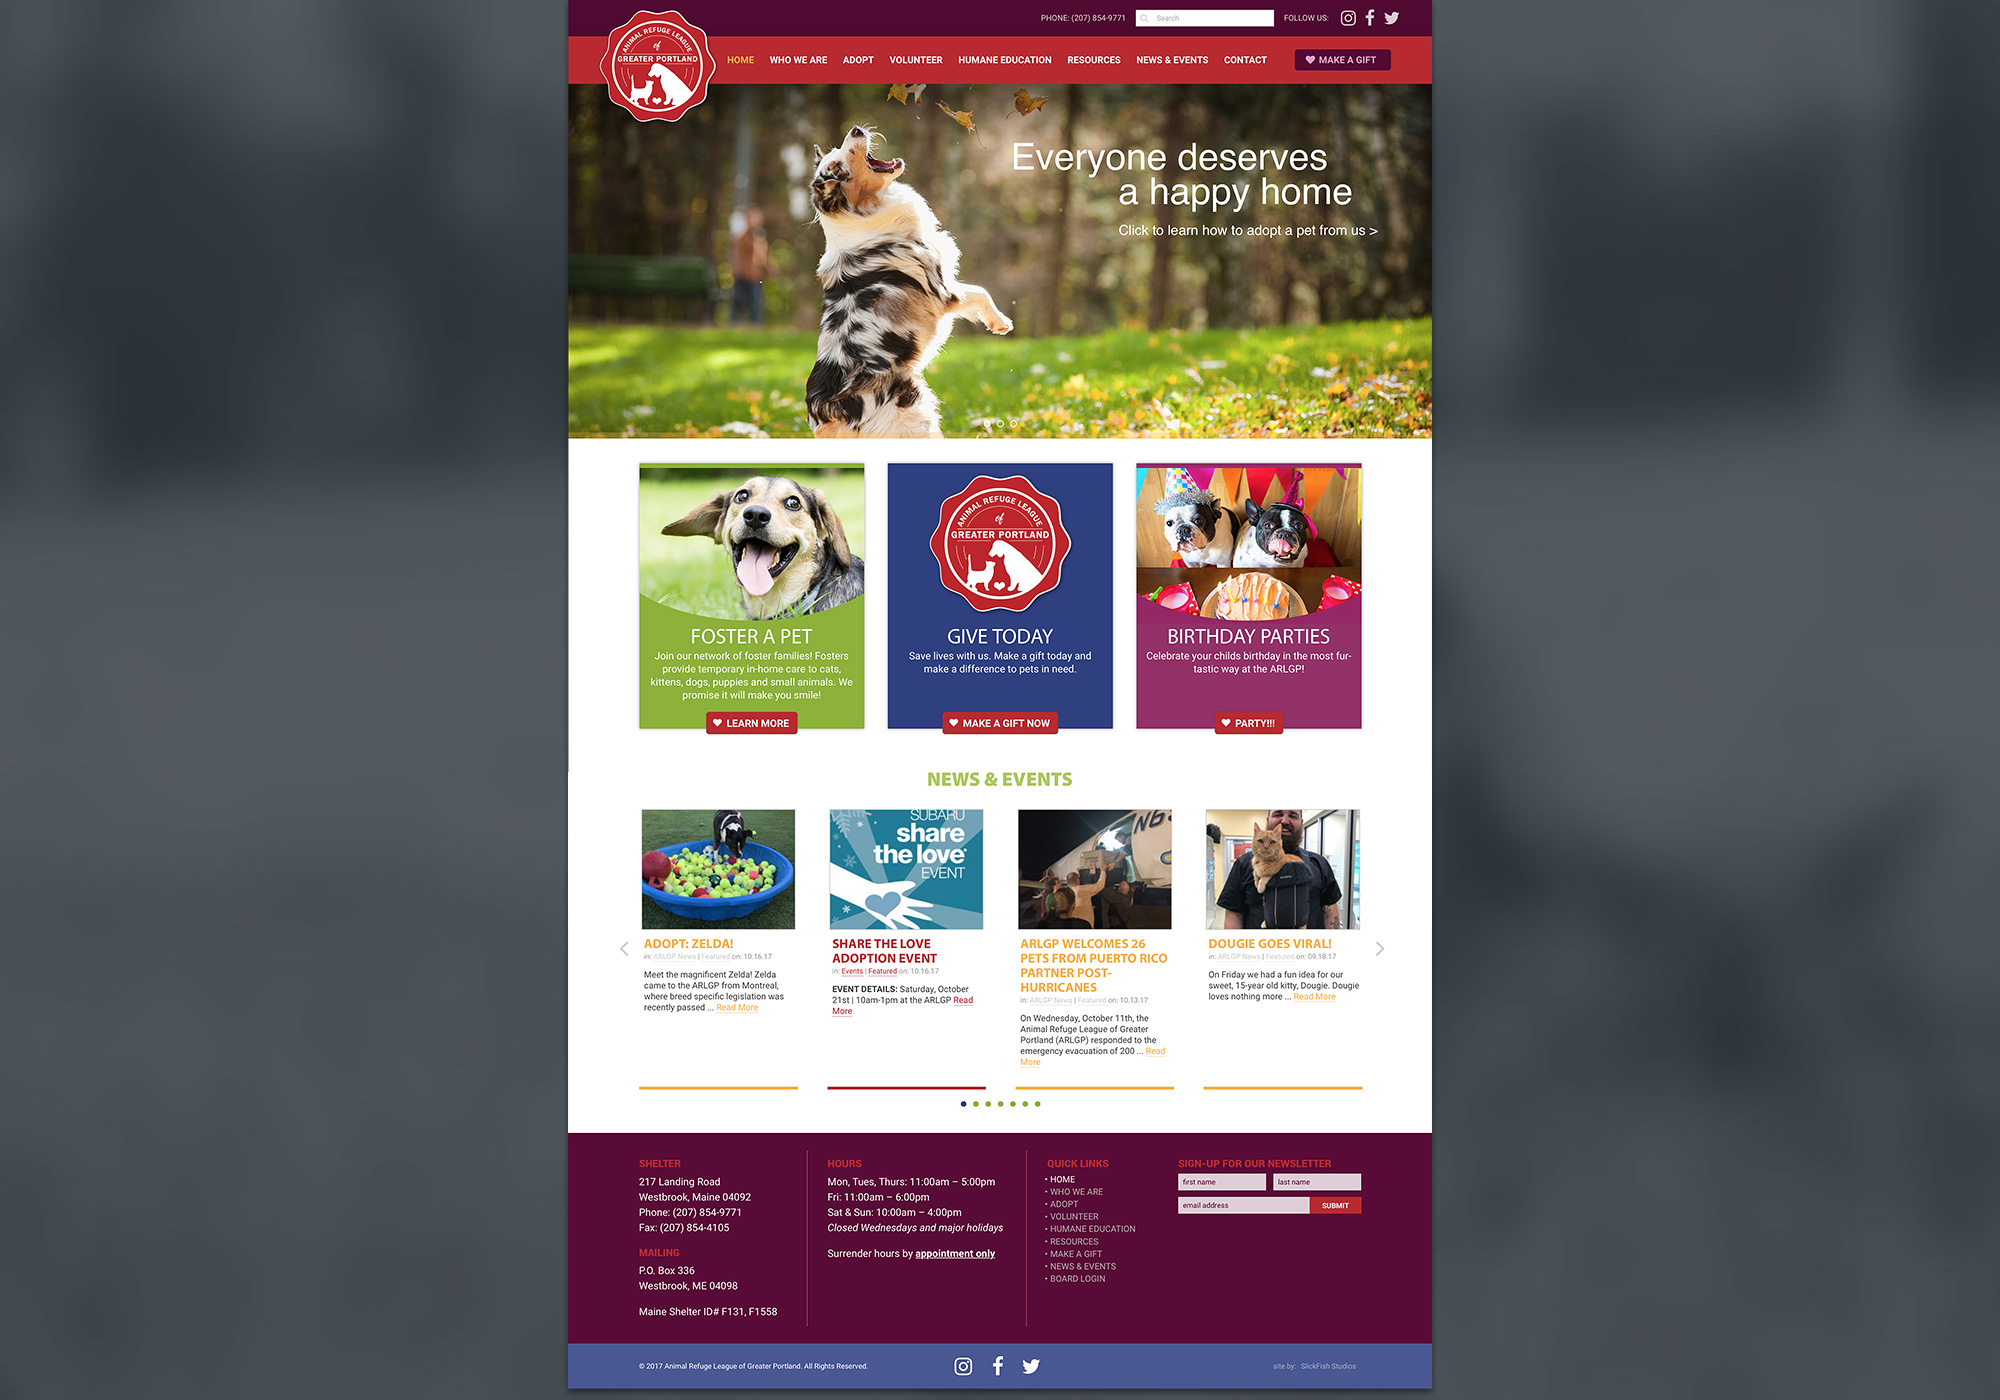 A screenshot of the SlickFish Studios designed and developed website for Animal Refuge League of Greater Portland in Maine